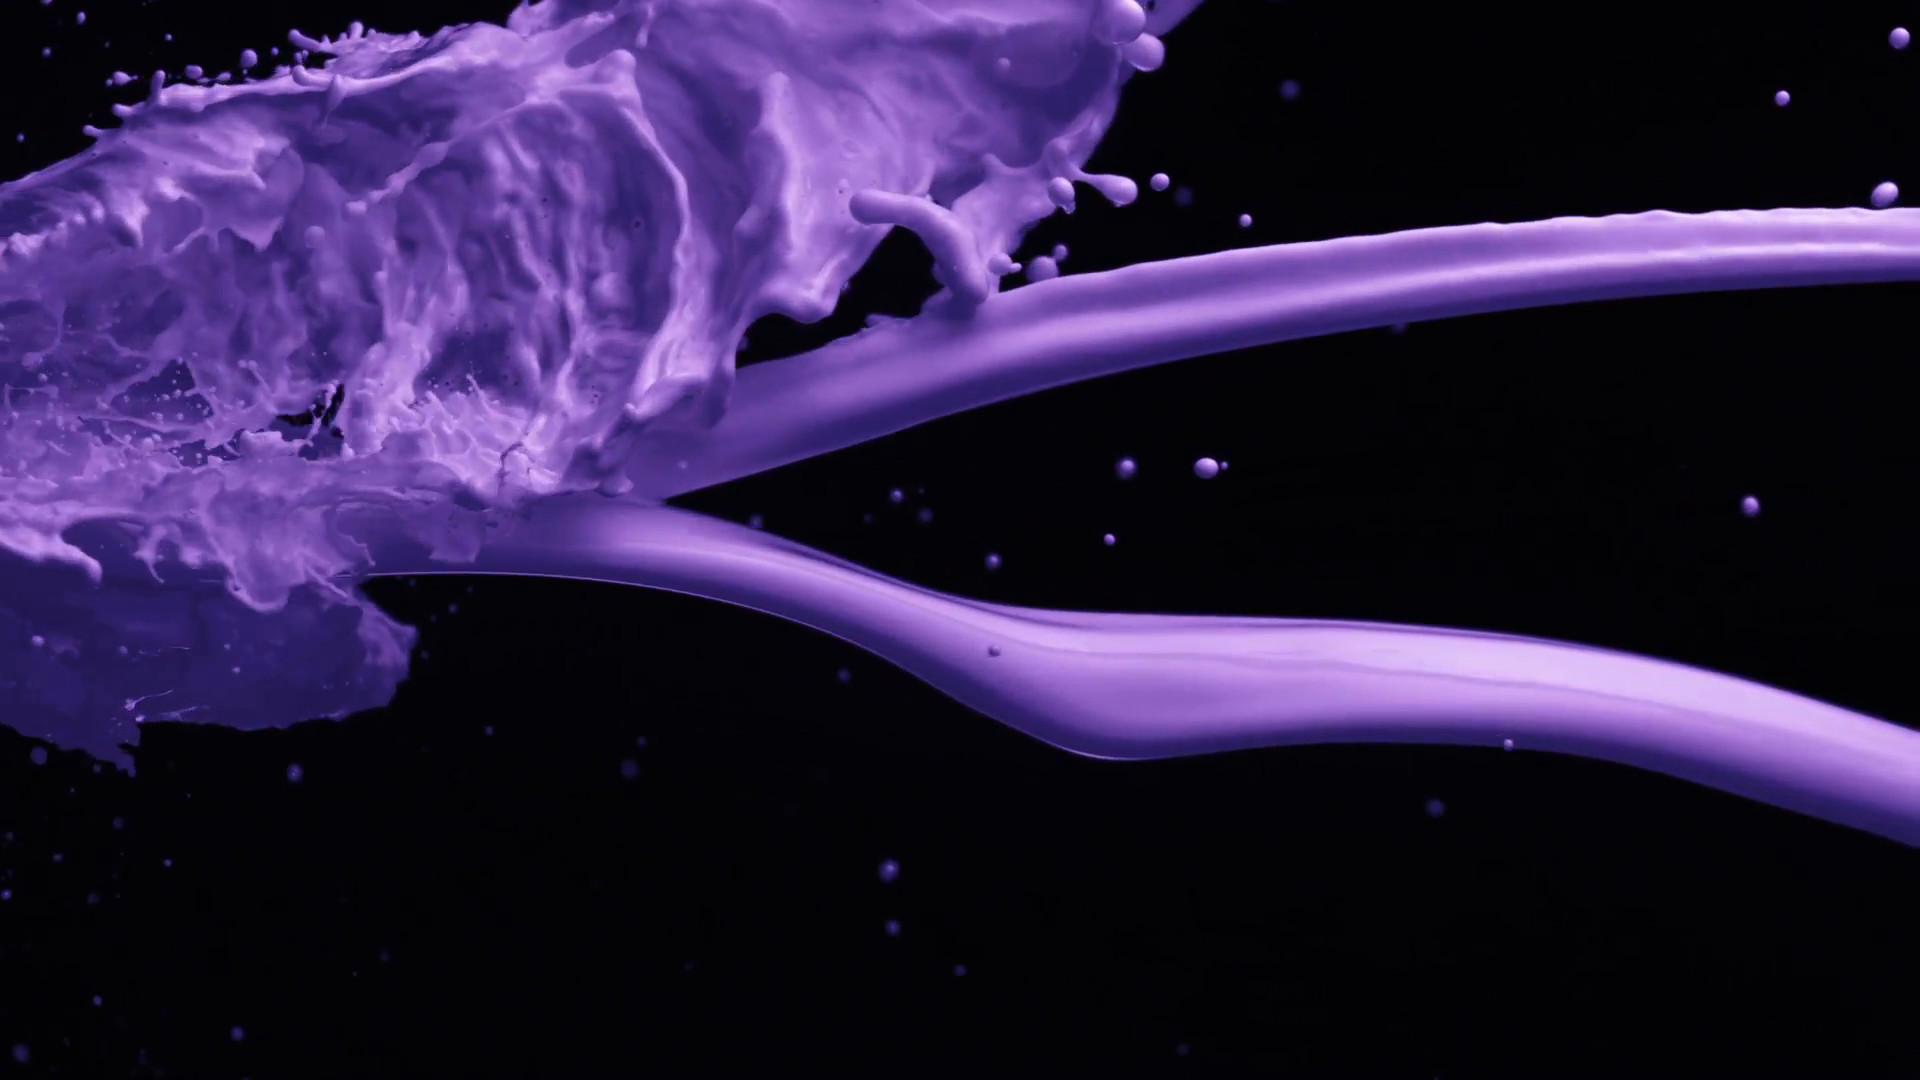 Paint Falling Wallpaper Purple And Black Background 183 ①